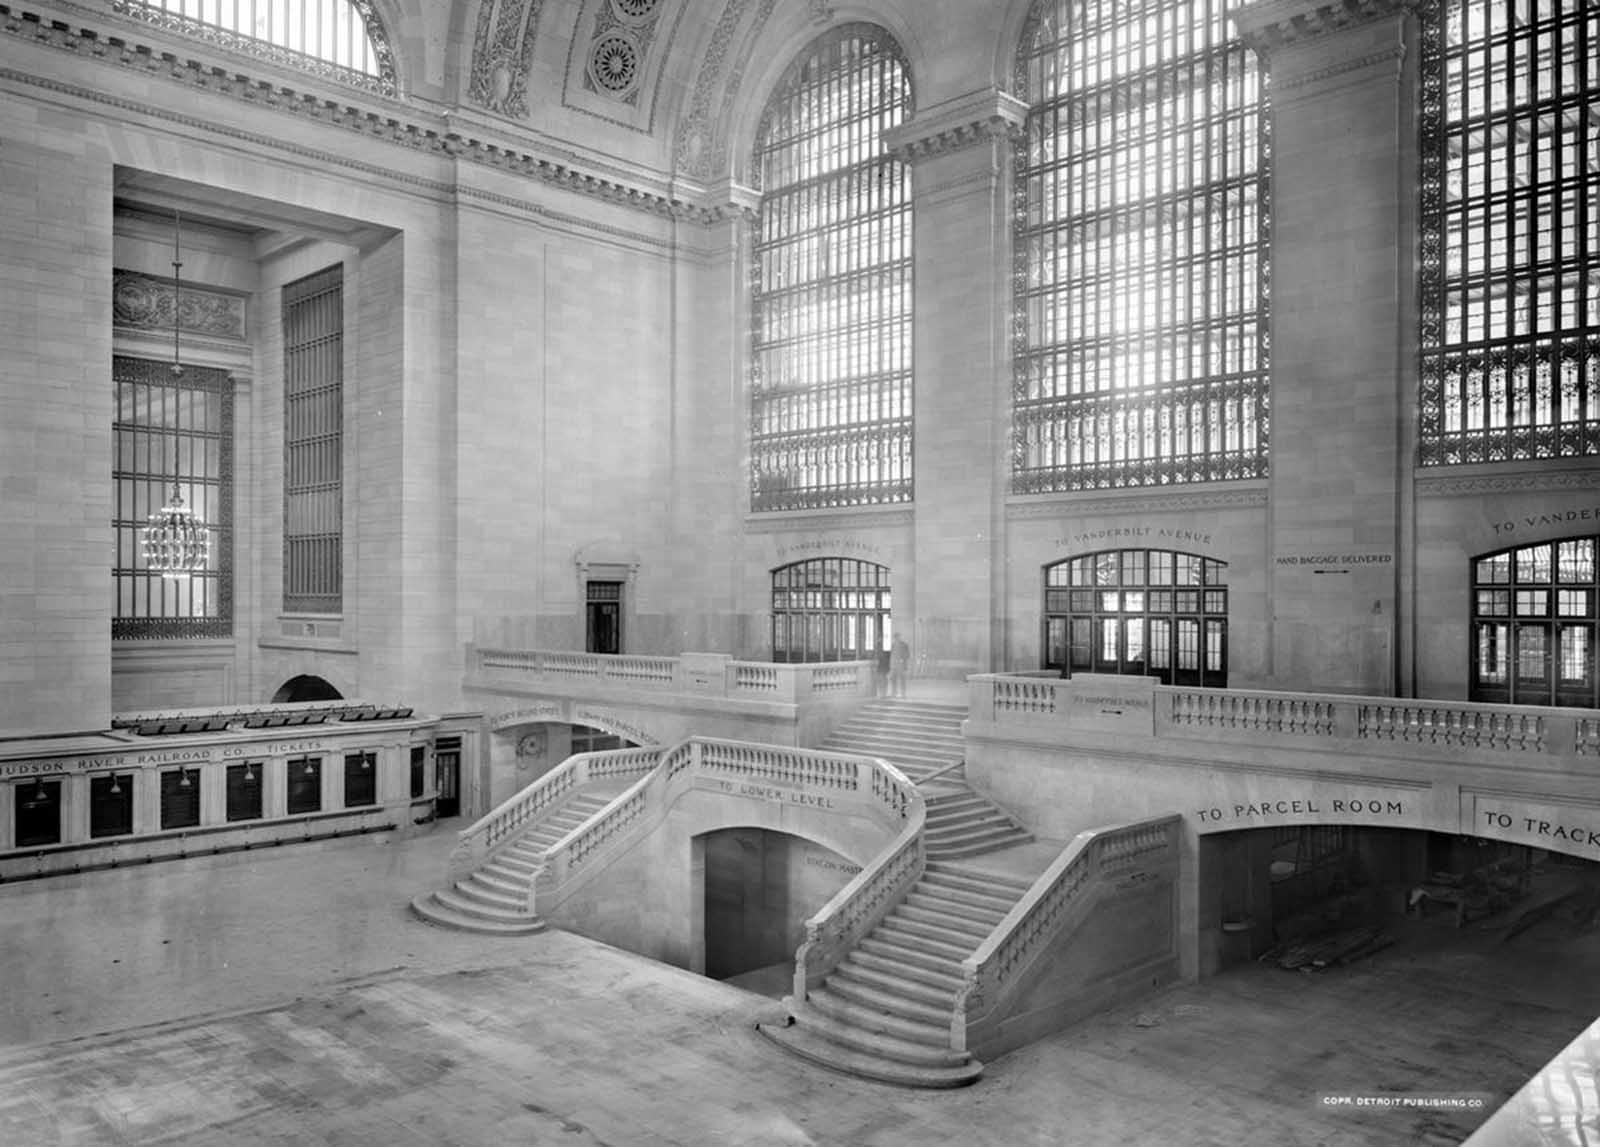 A view of the west balcony in Grand Central Station in New York in this photo taken between 1913-1930.